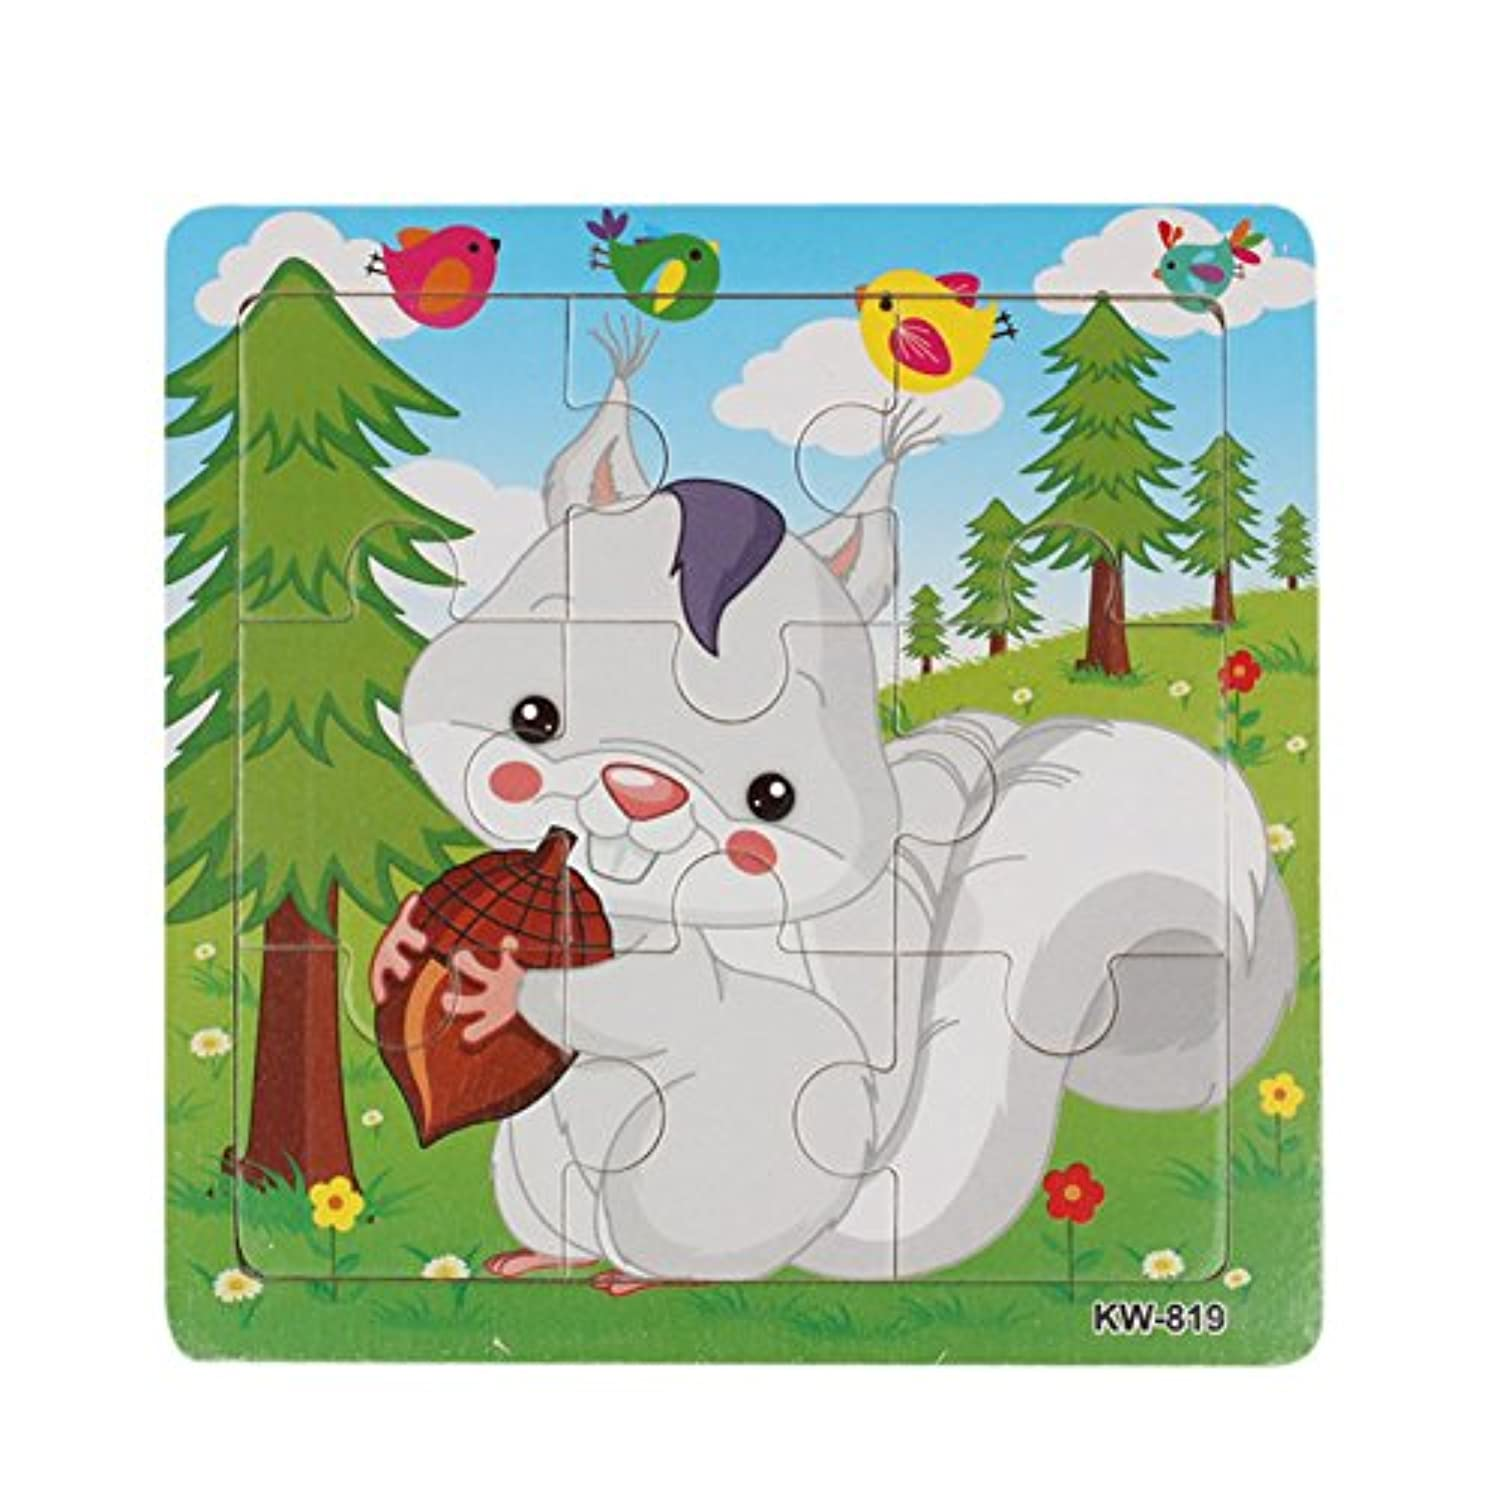 Joykith Puzzles Toys Wooden Kids Children Jigsaw Education and Learning Puzzles Toys Preschool Puzzles Tools for Toddler Children (D)